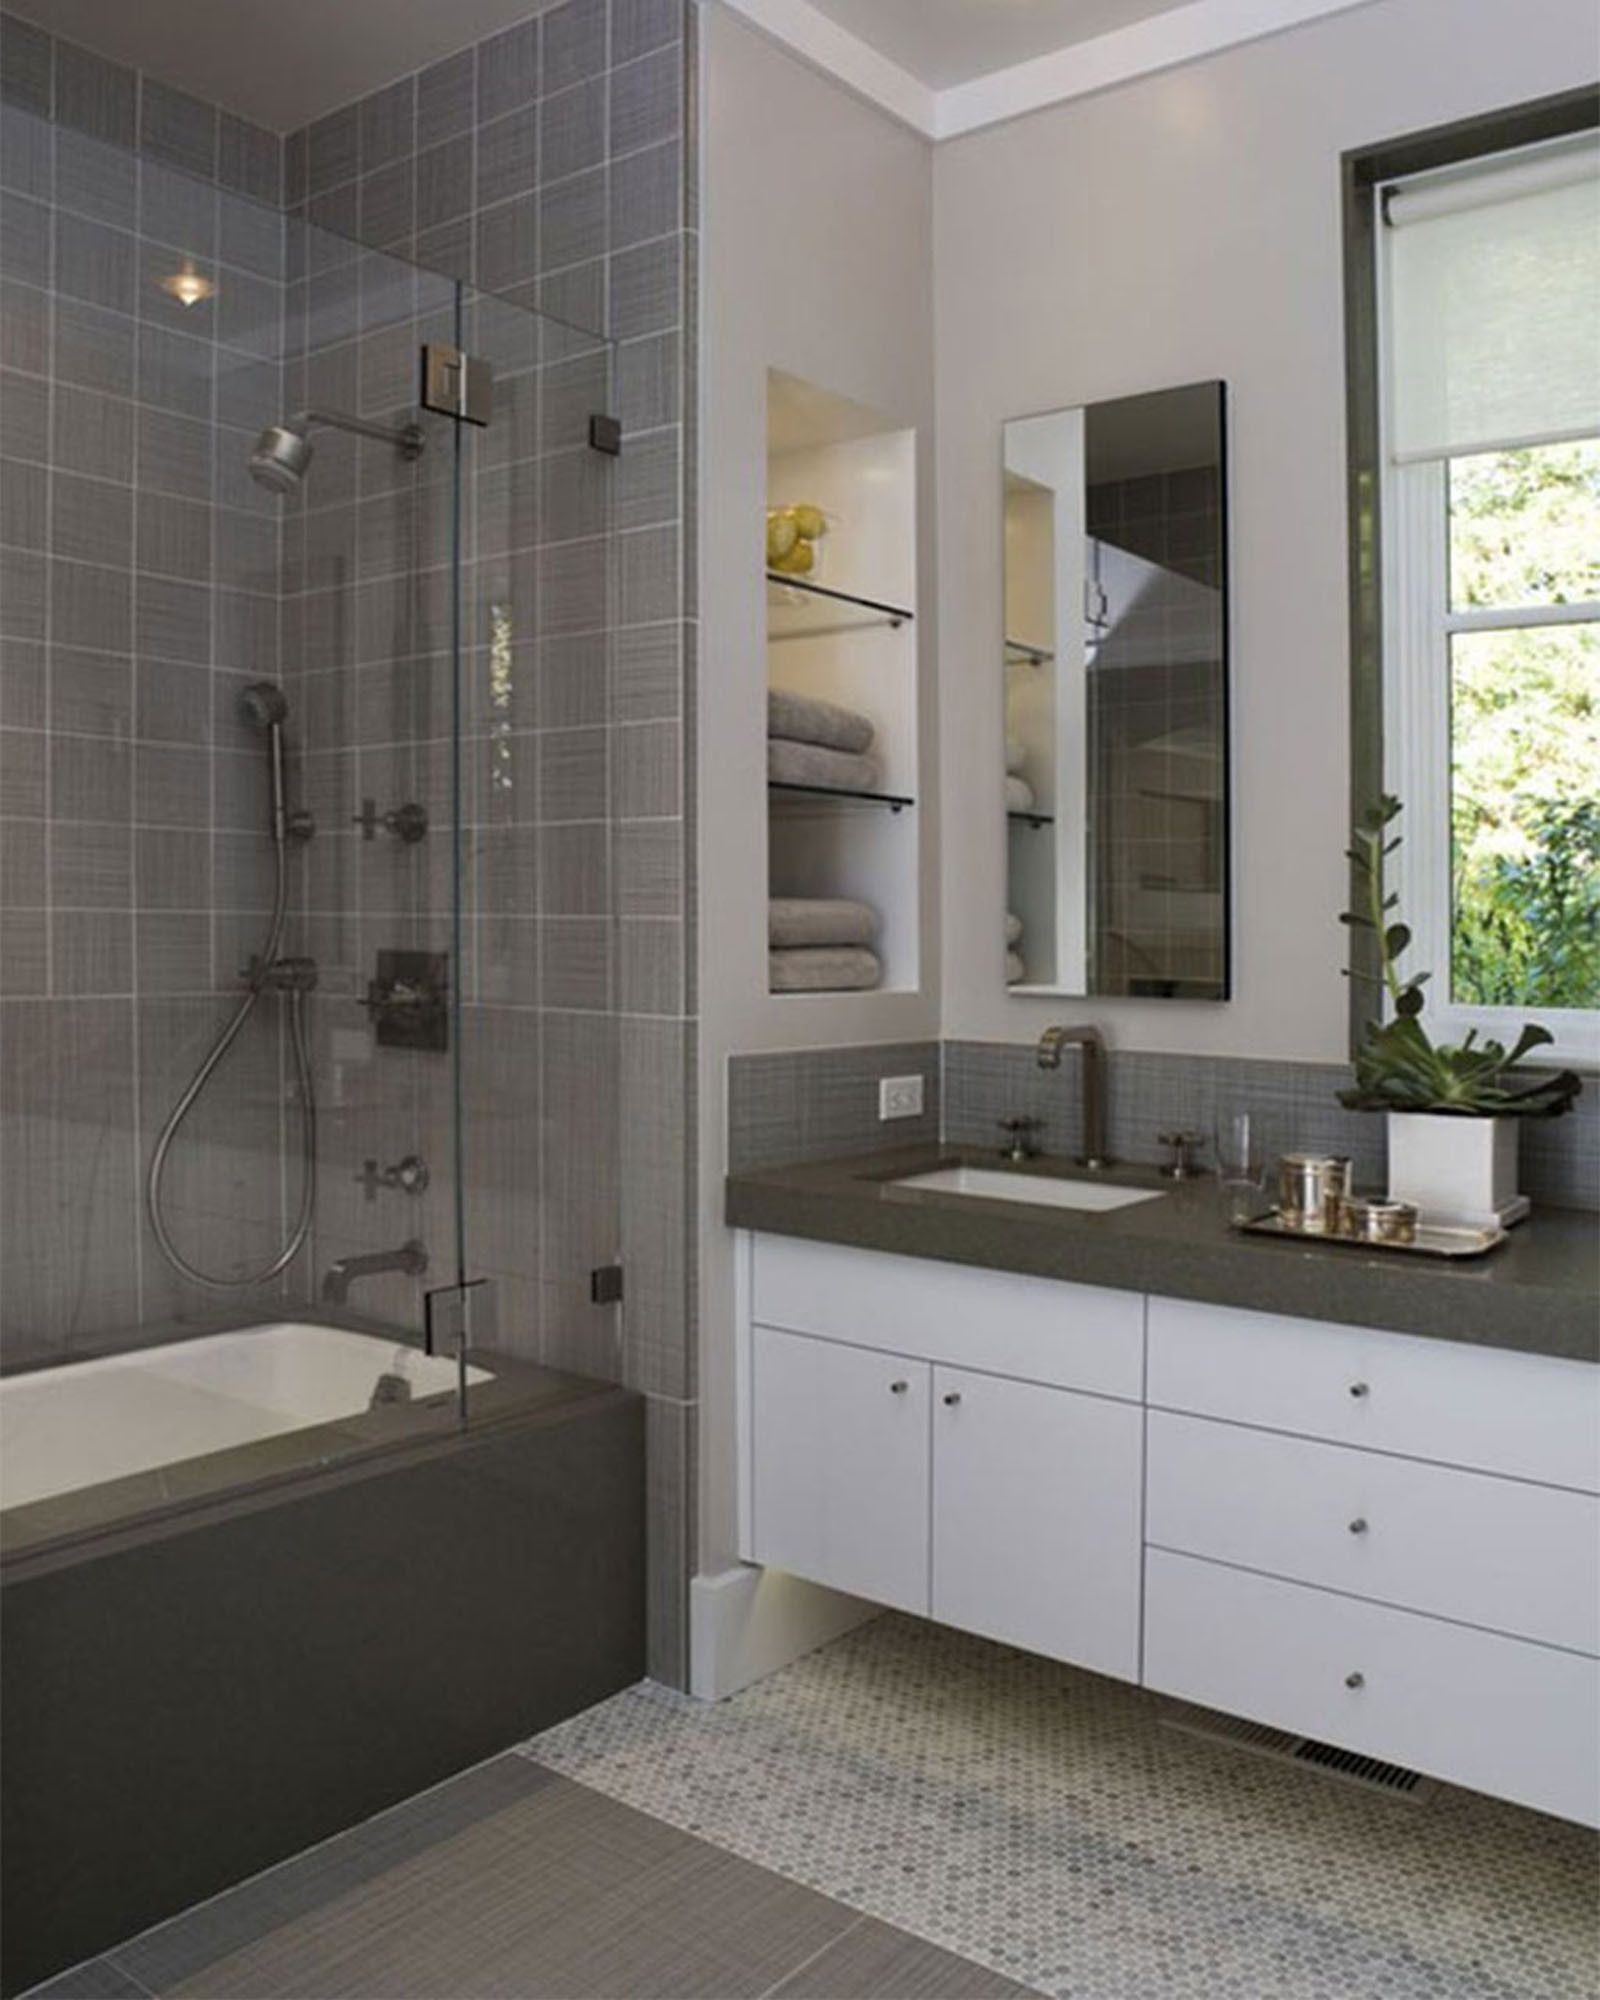 Wonderful small bathroom remodel ideas on a budget with beautiful